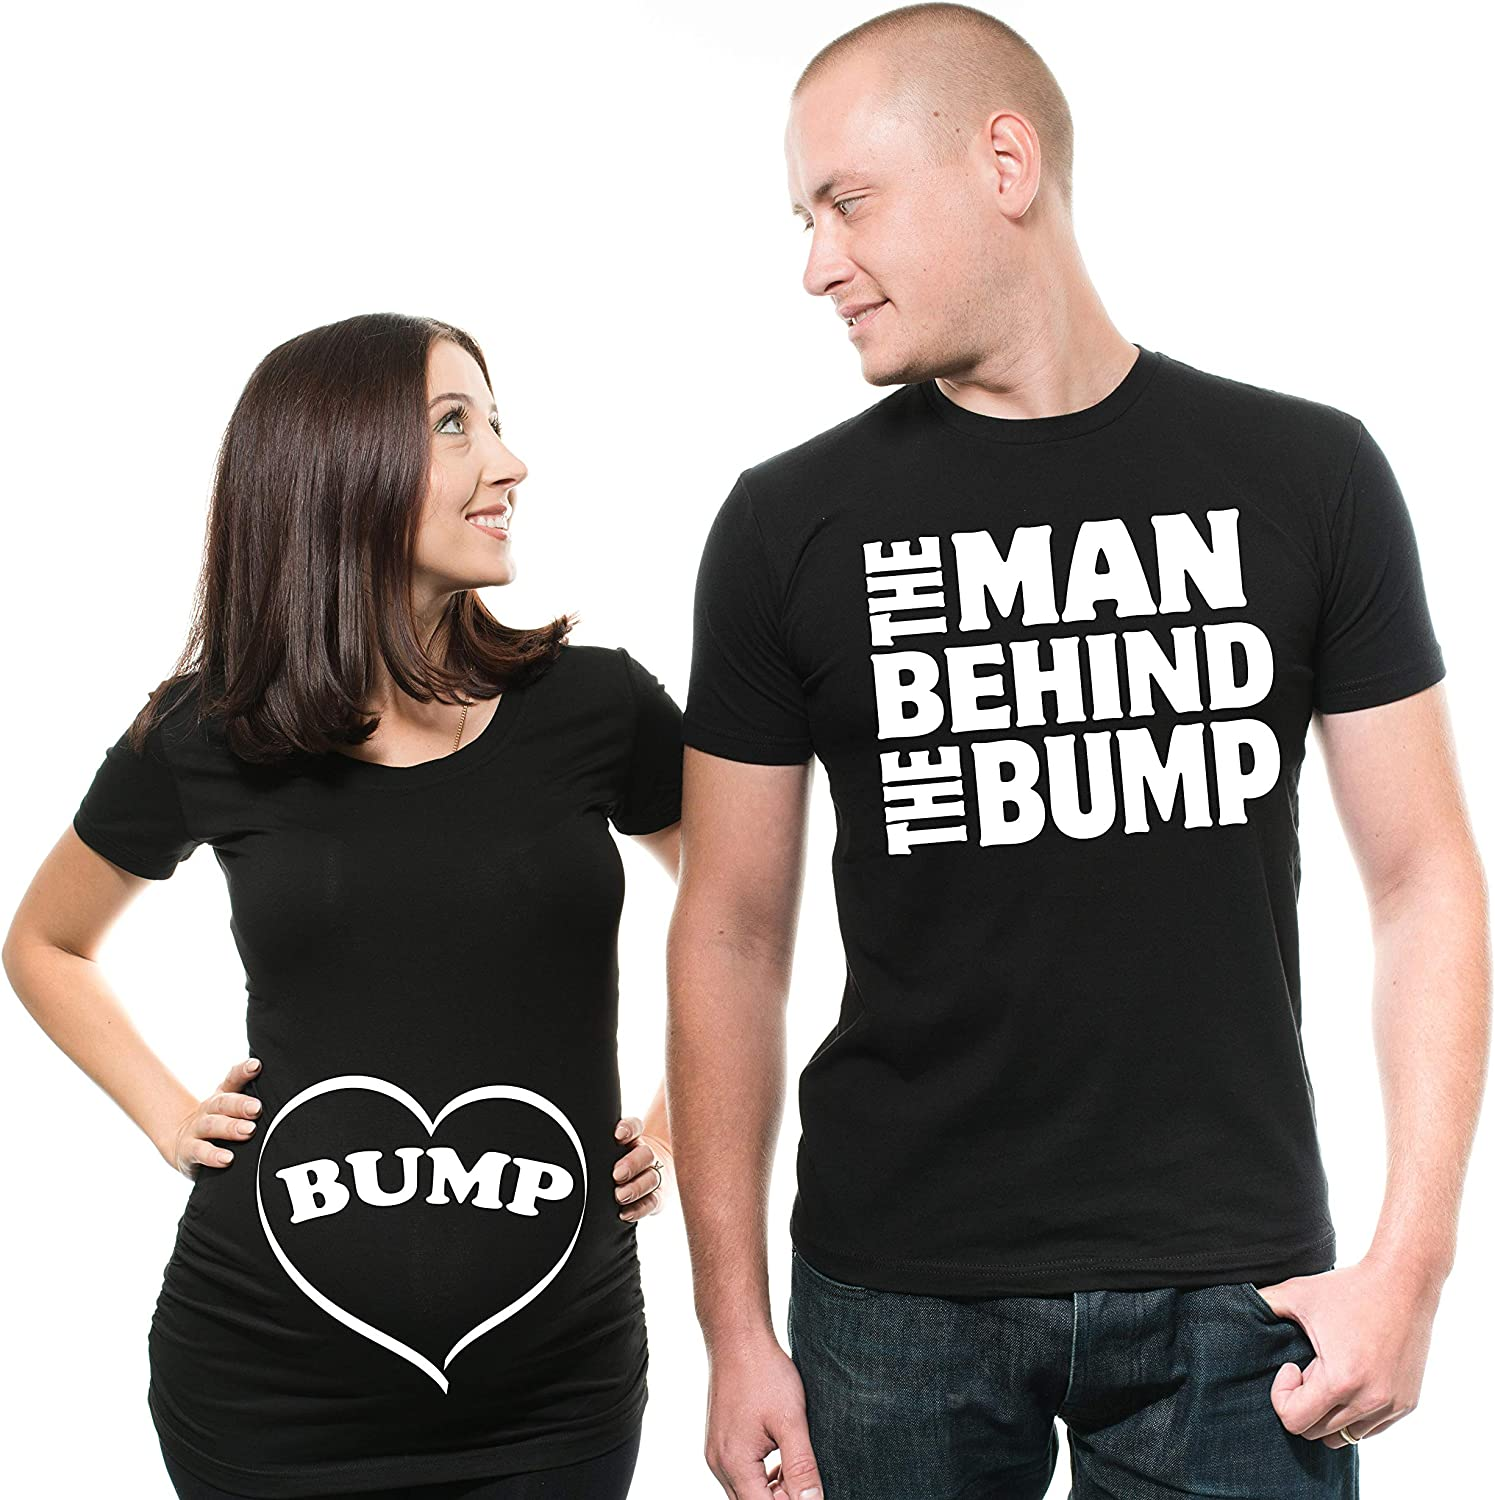 Couple Shirts Funny Couple Maternity Matching Tees Baby Shower Shirts At Amazon Women S Clothing Store